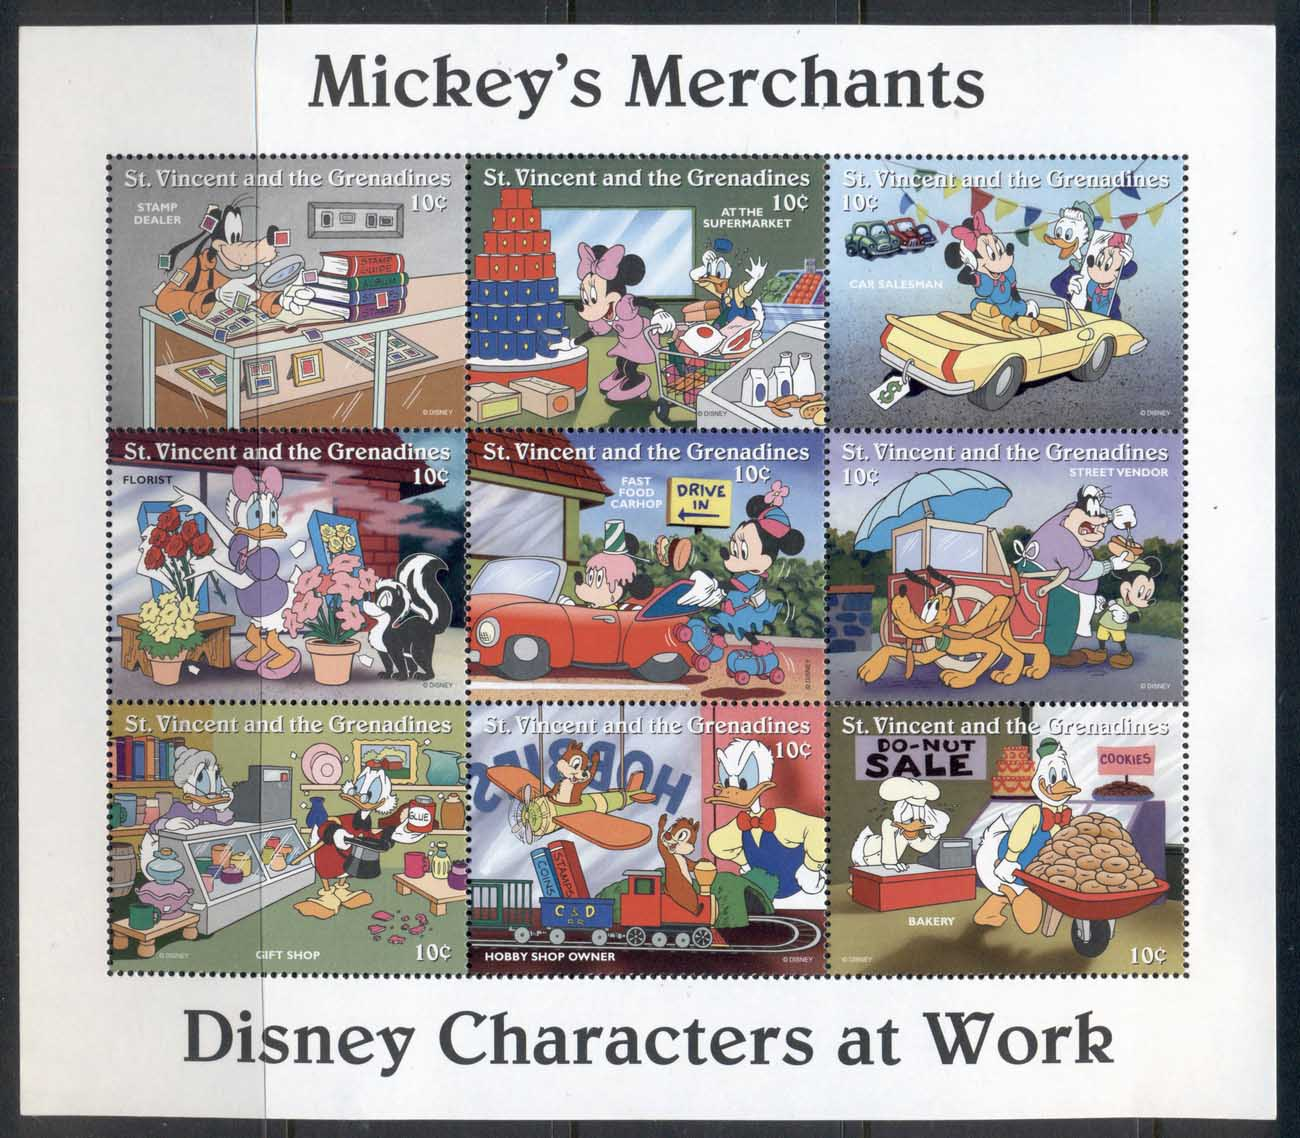 St Vincent 1996 Disney Characters, Mickey's Merchants sheetlet MUH